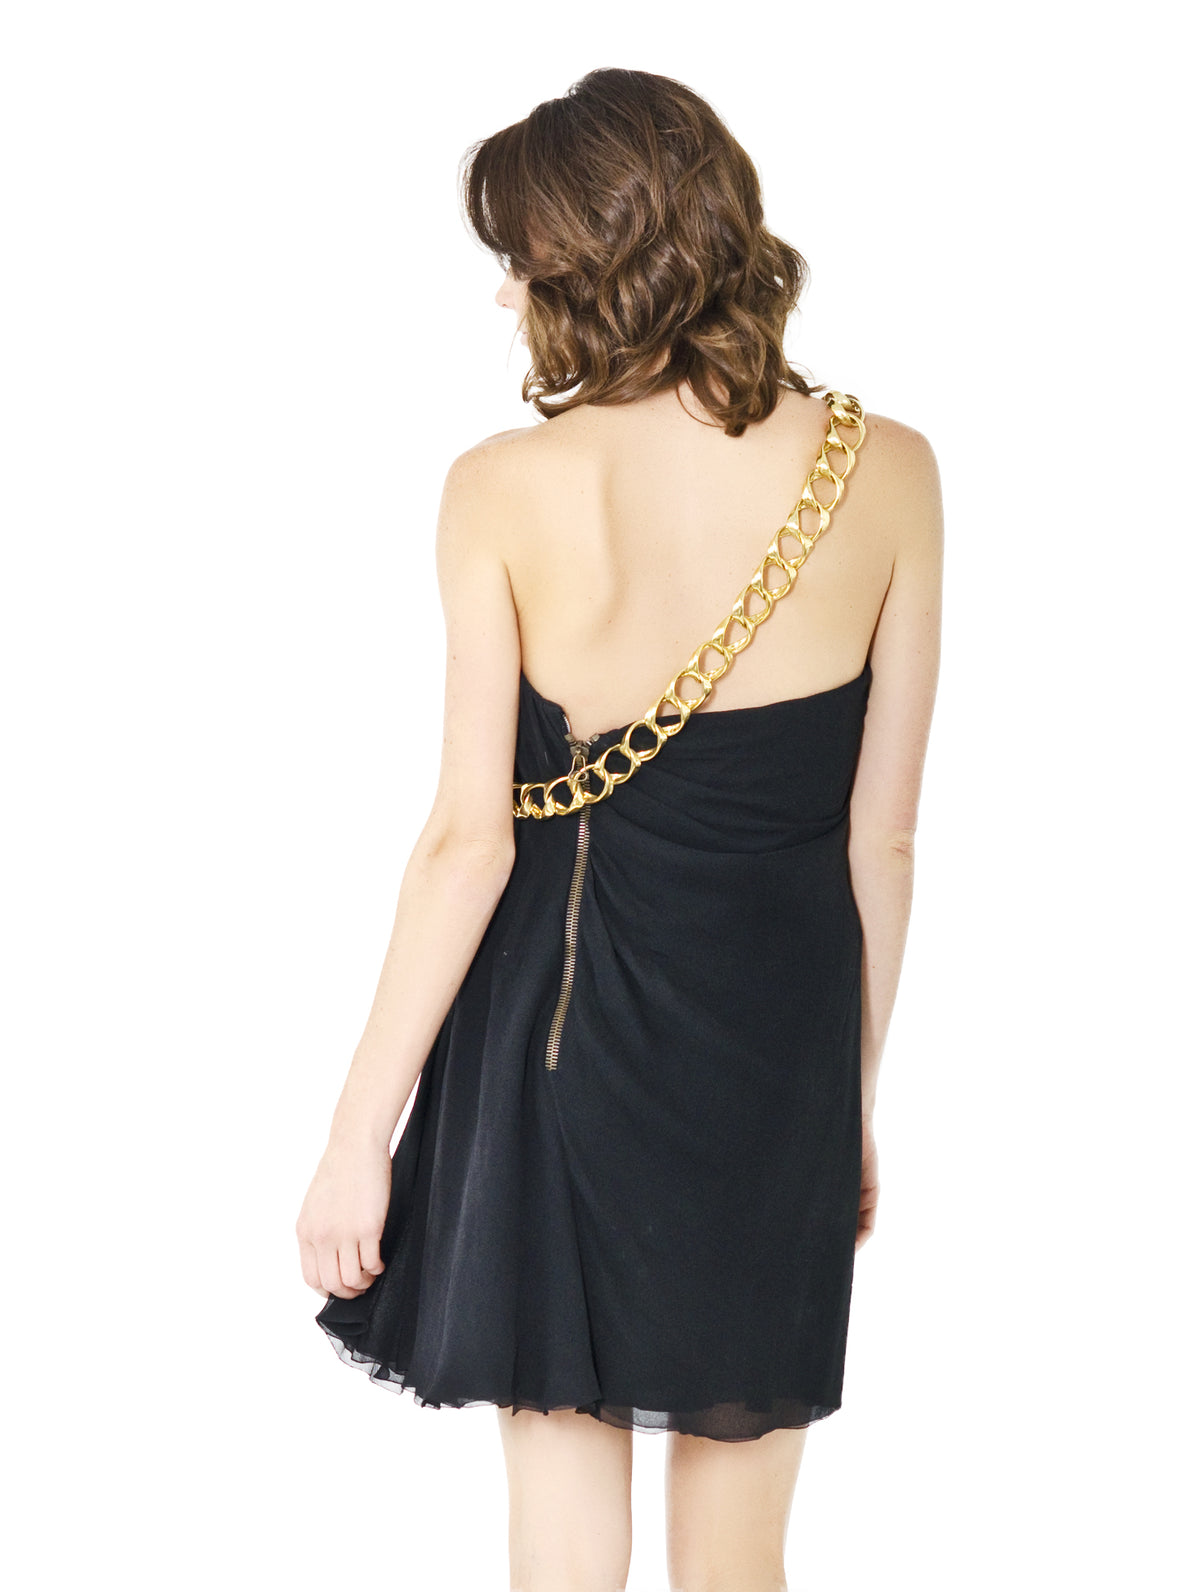 Vintage Balmain Paris Couture – Black and Gold Chain Cocktail Dress - Size 38